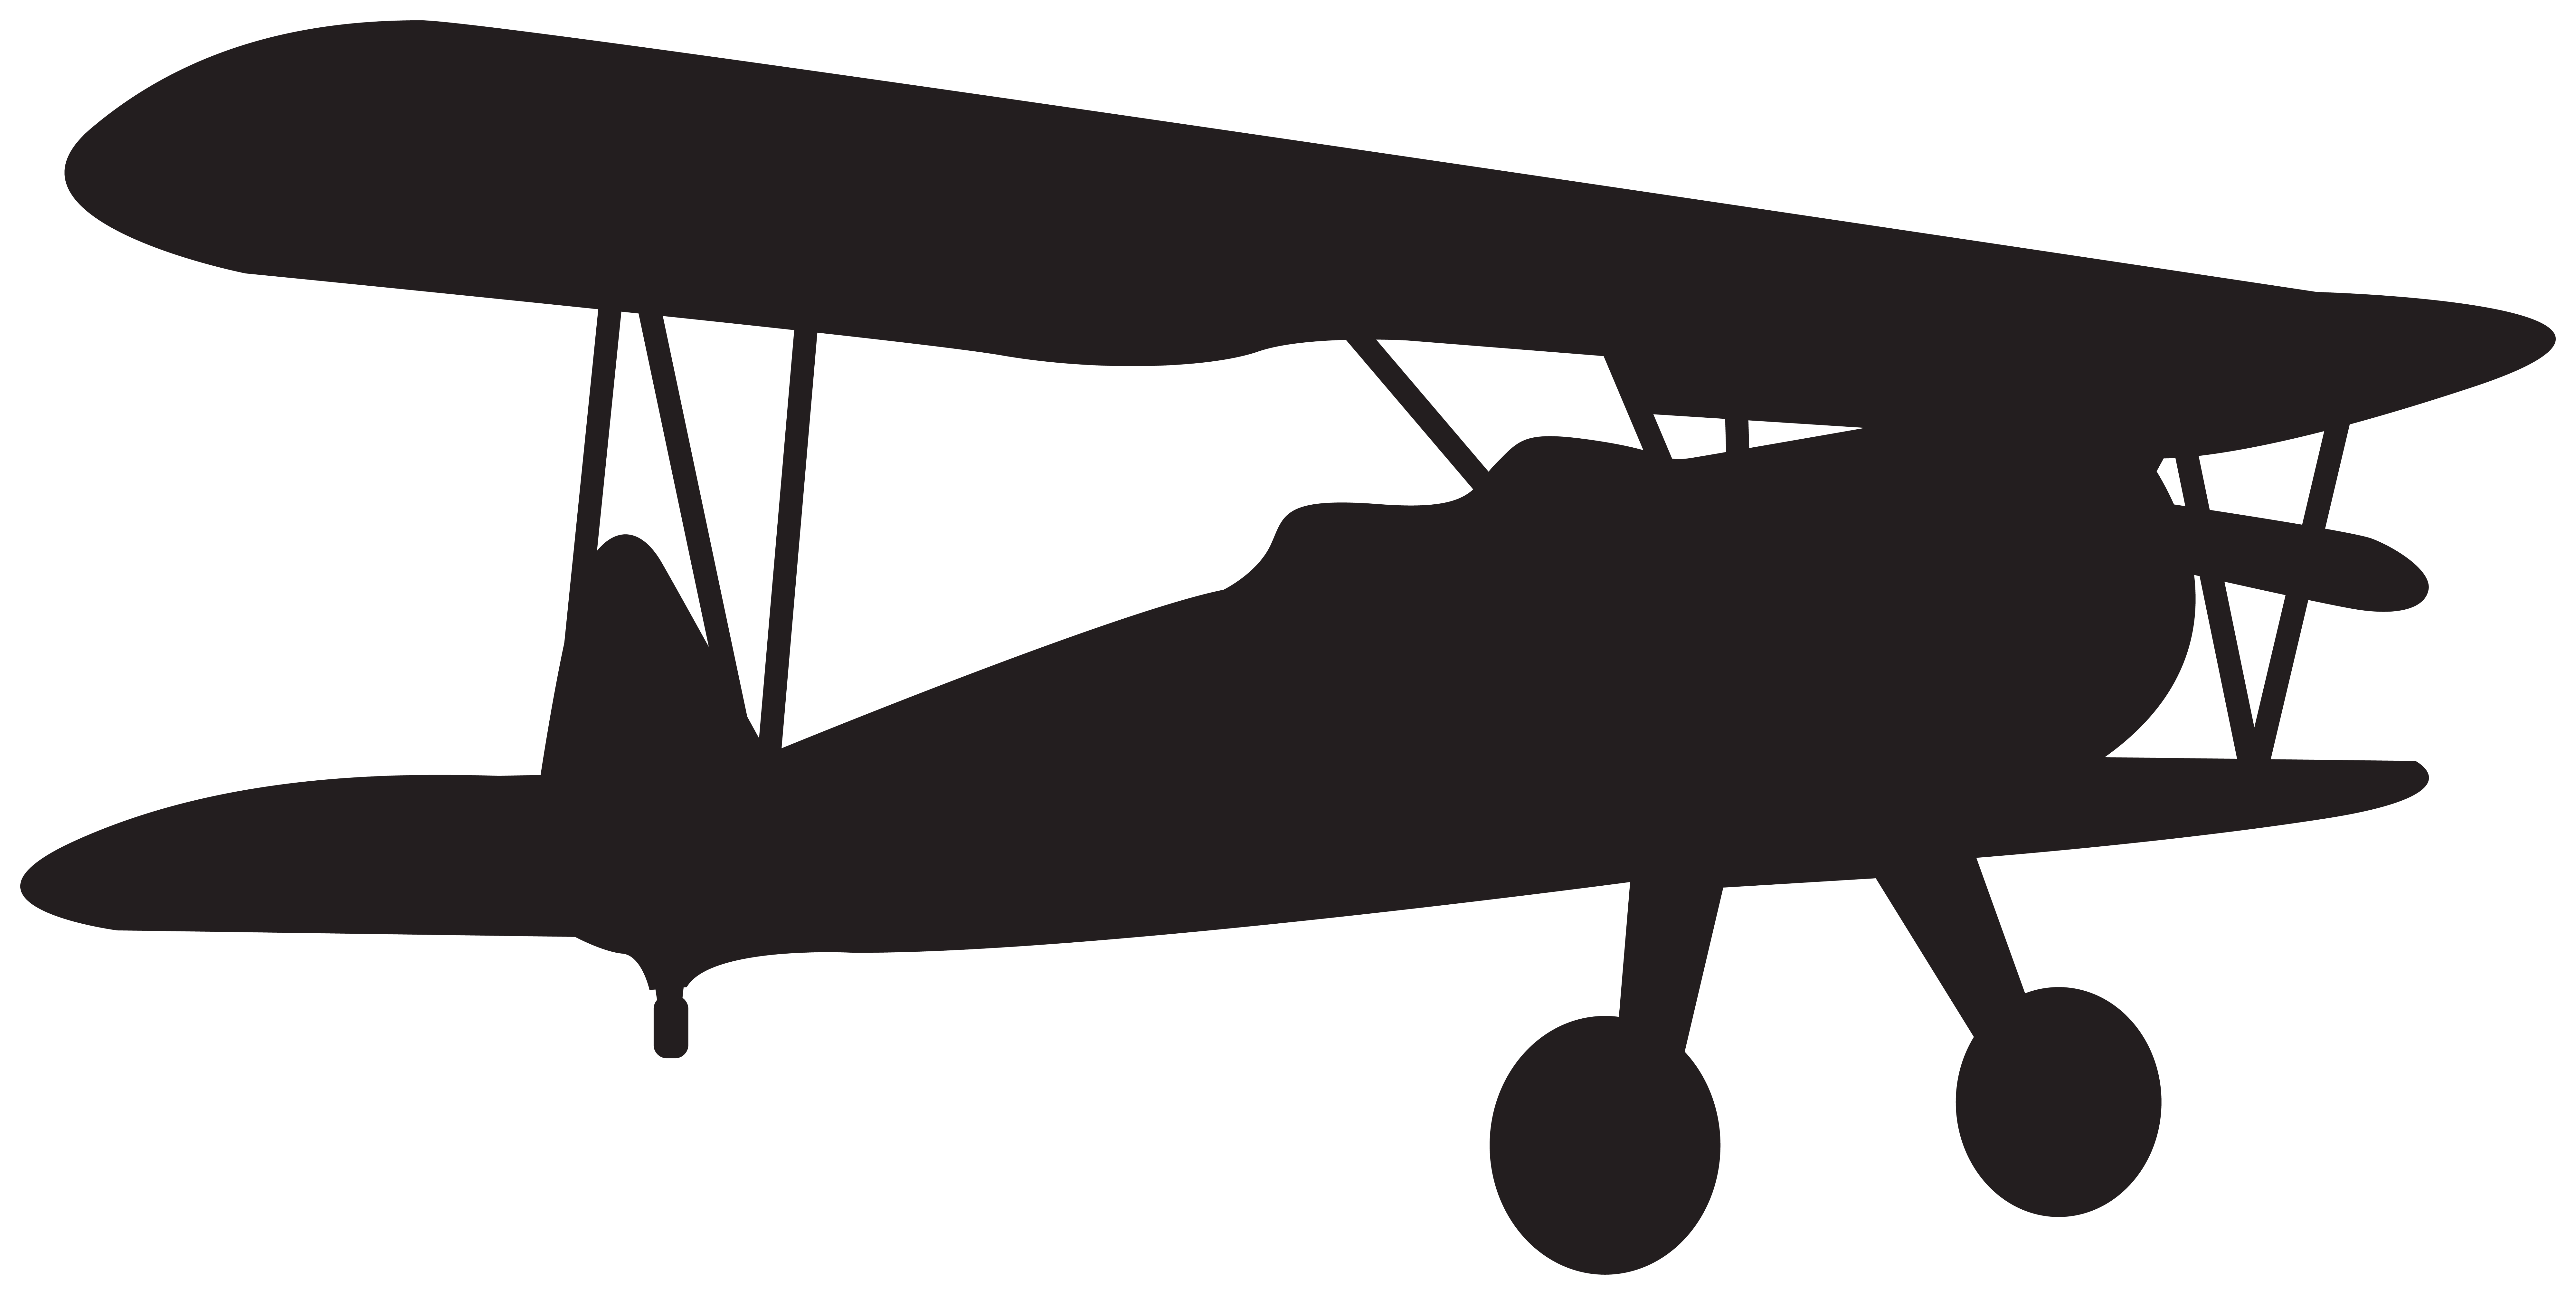 Plane Silhouette Png Free Plane Silhouette Png Transparent